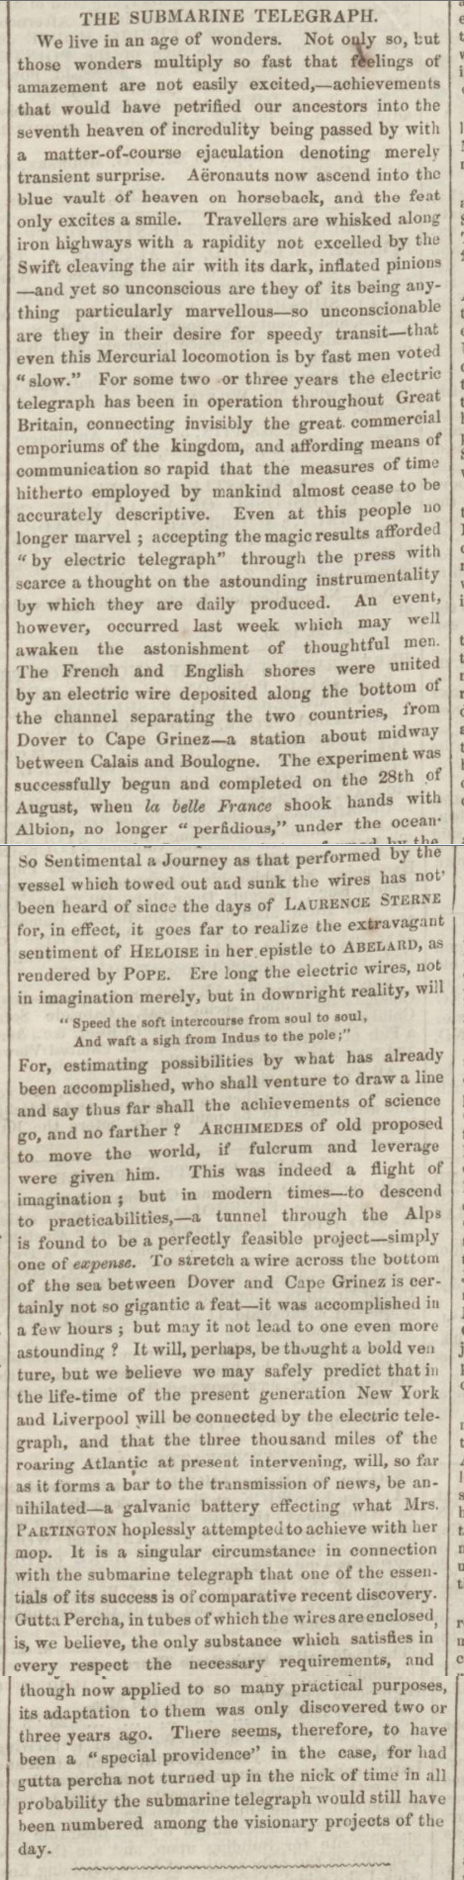 historical newspaper report on The Submarine Telegraph Between England and France - 28 August 1850